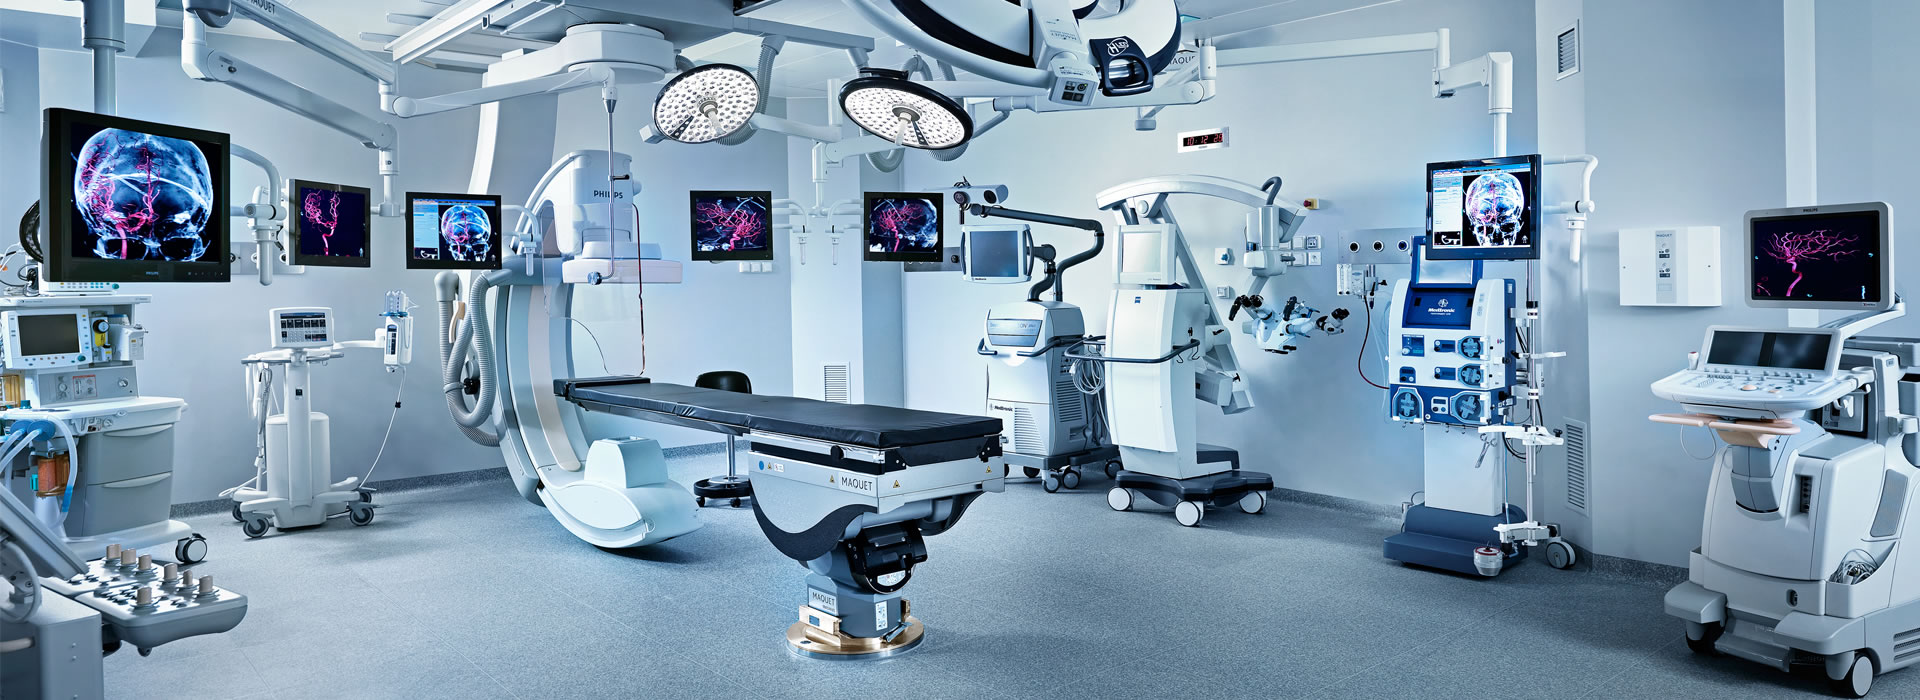 Surgery Center - Operating Room